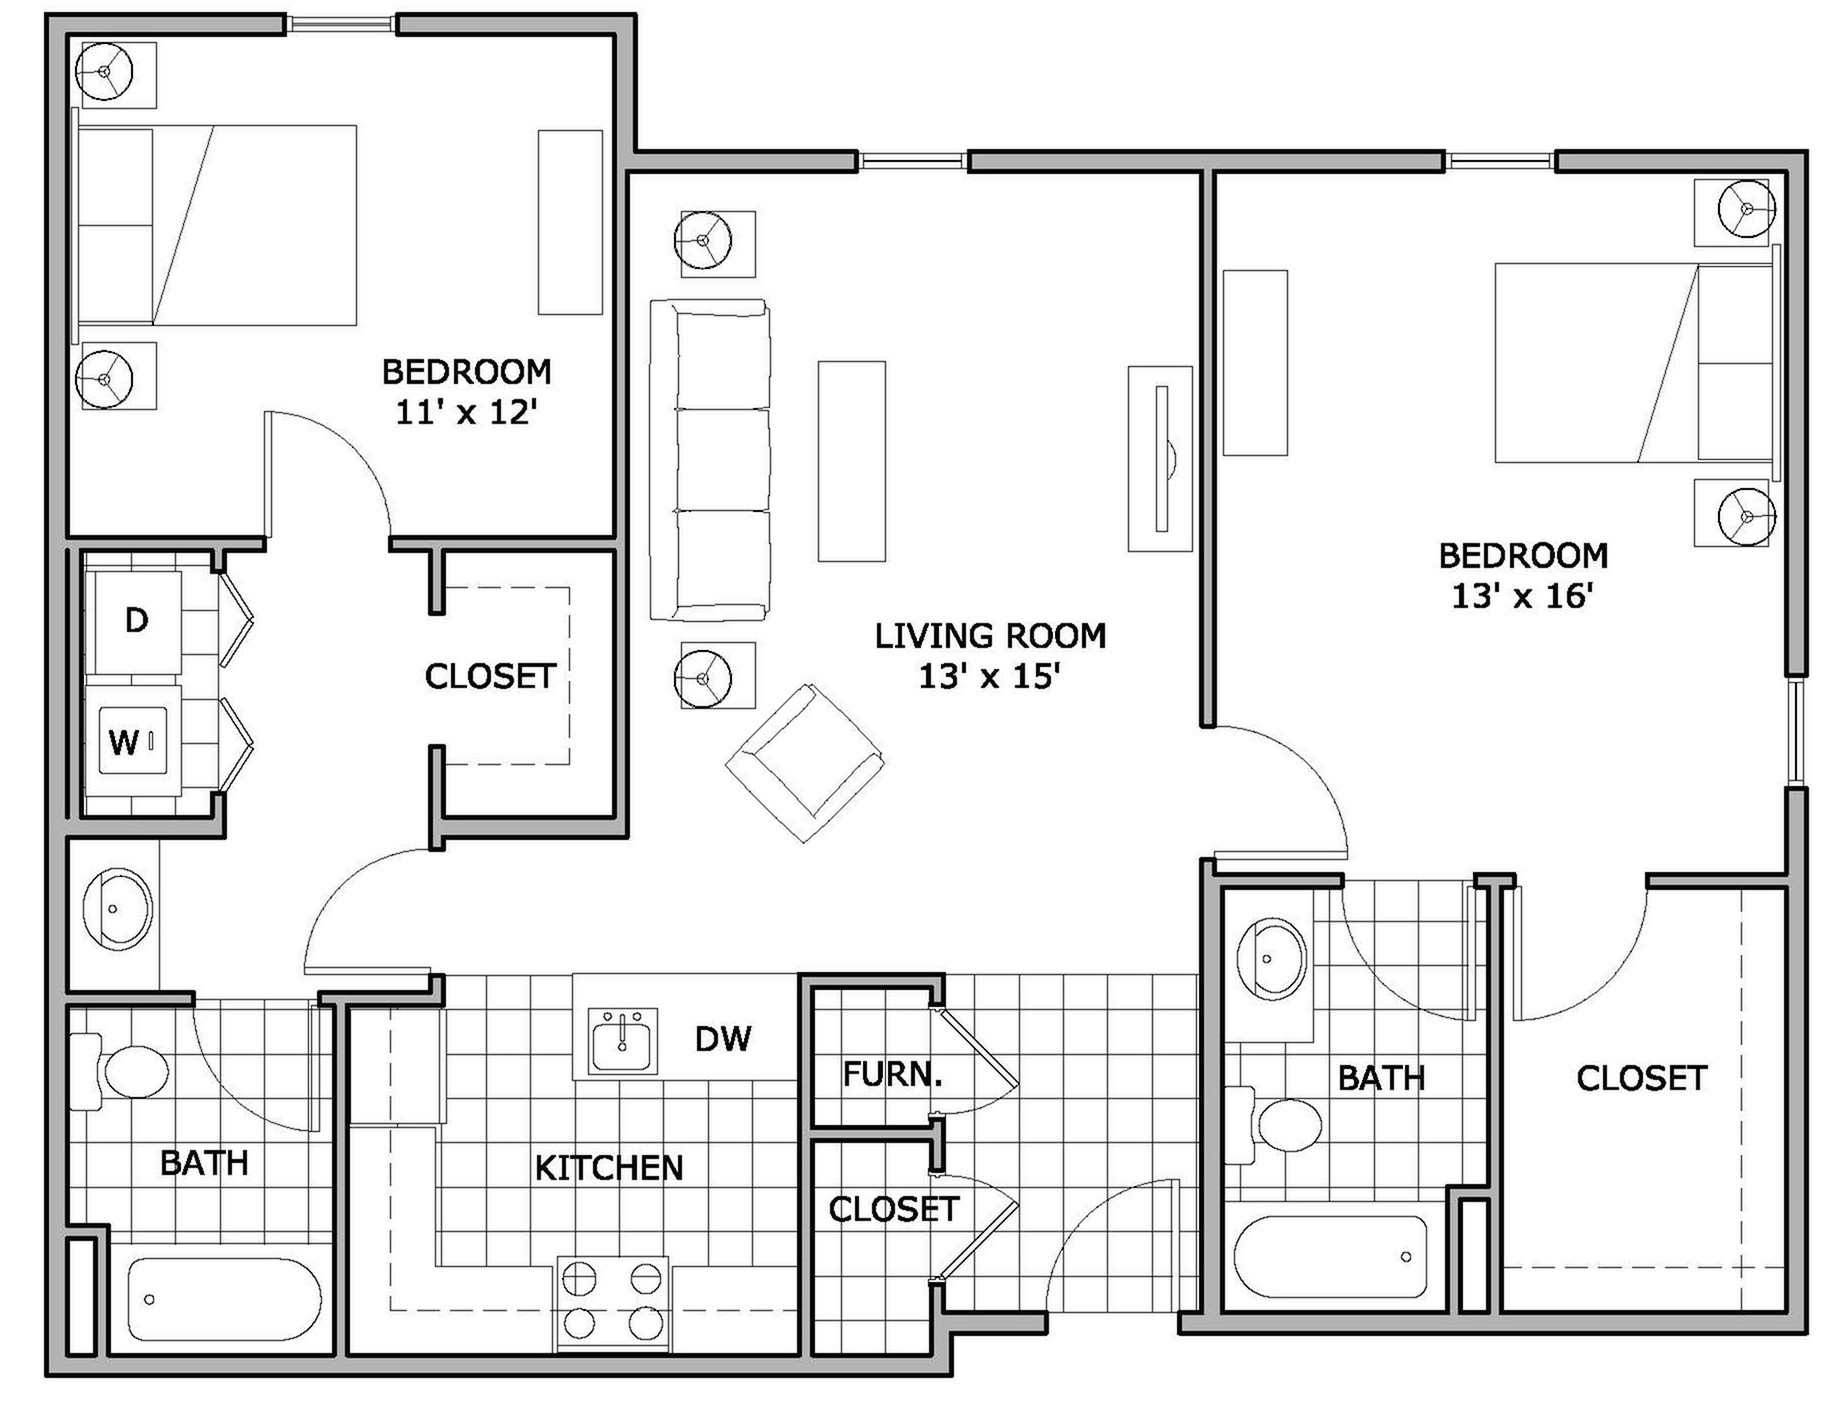 2 bed 2 bathapartment in springfield mo the abbey for 2 bedroom apartments plans